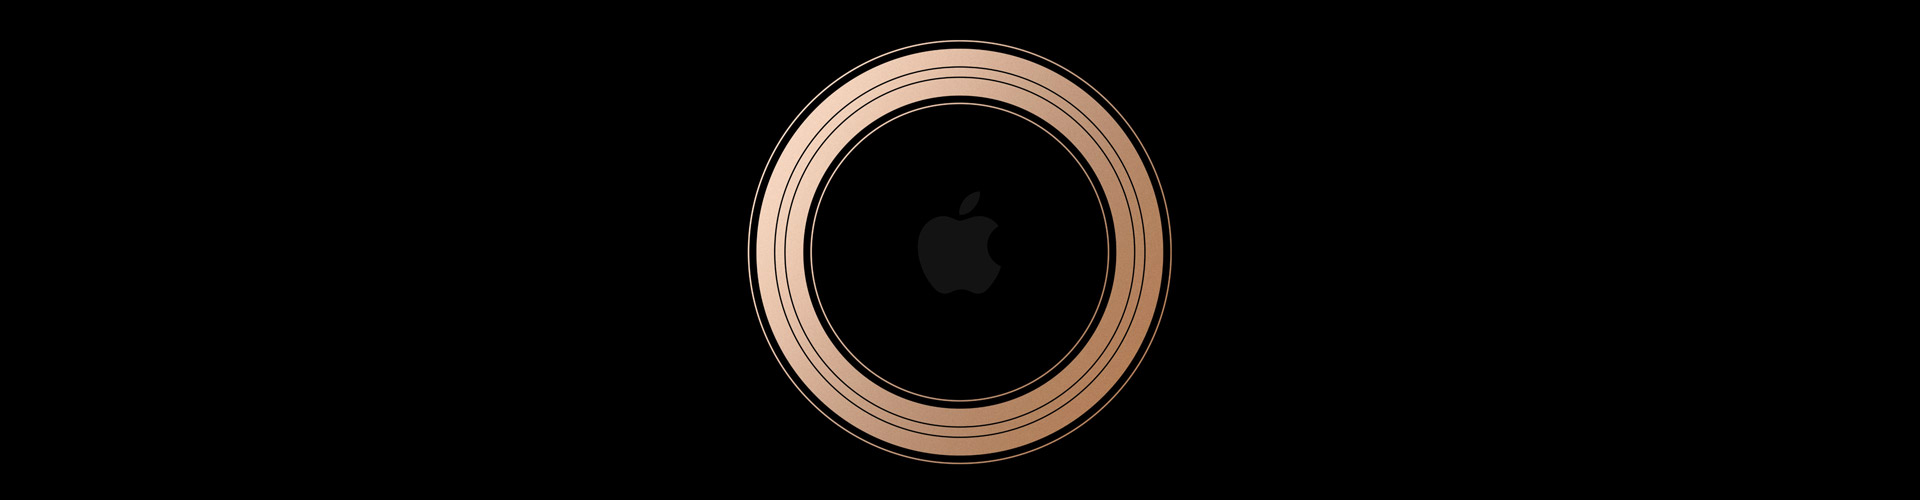 Header image of Apple's Special Event 2018